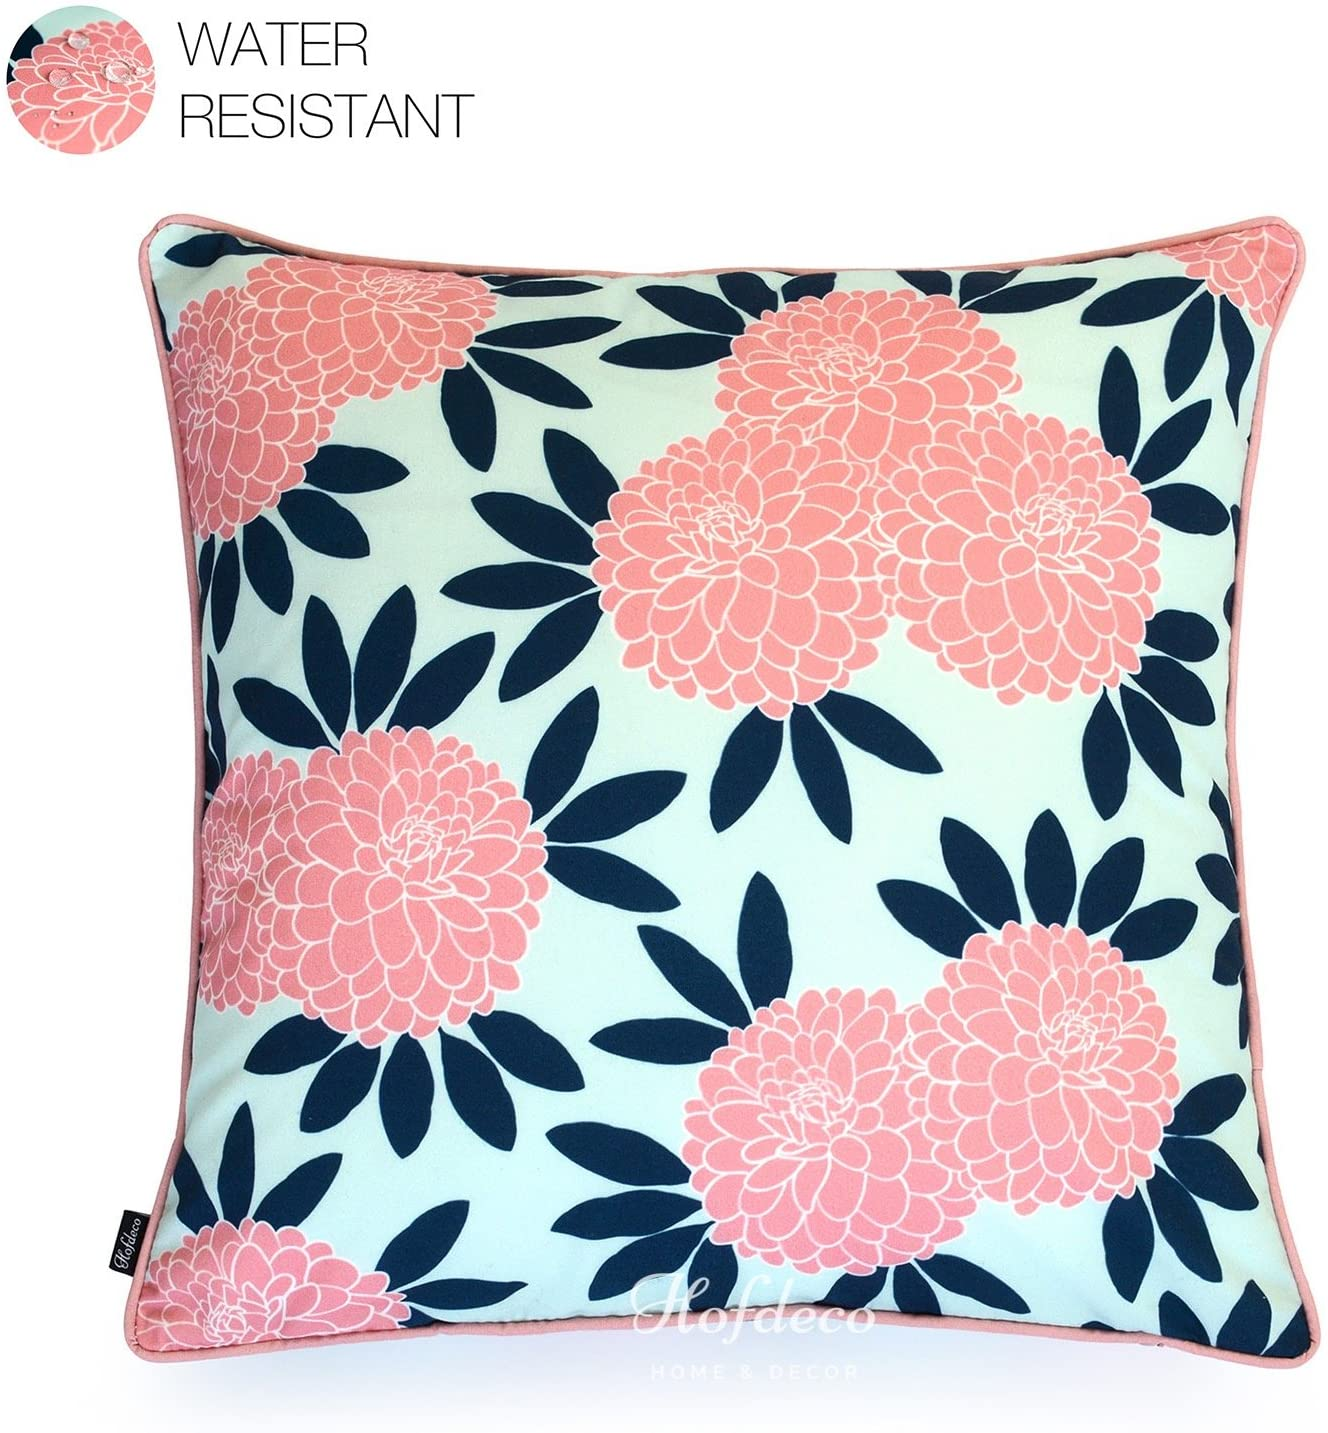 Hofdeco Spring Indoor Outdoor Pillow Cover ONLY, Water Resistant for Patio Lounge Sofa, Navy Pink Floral, 18